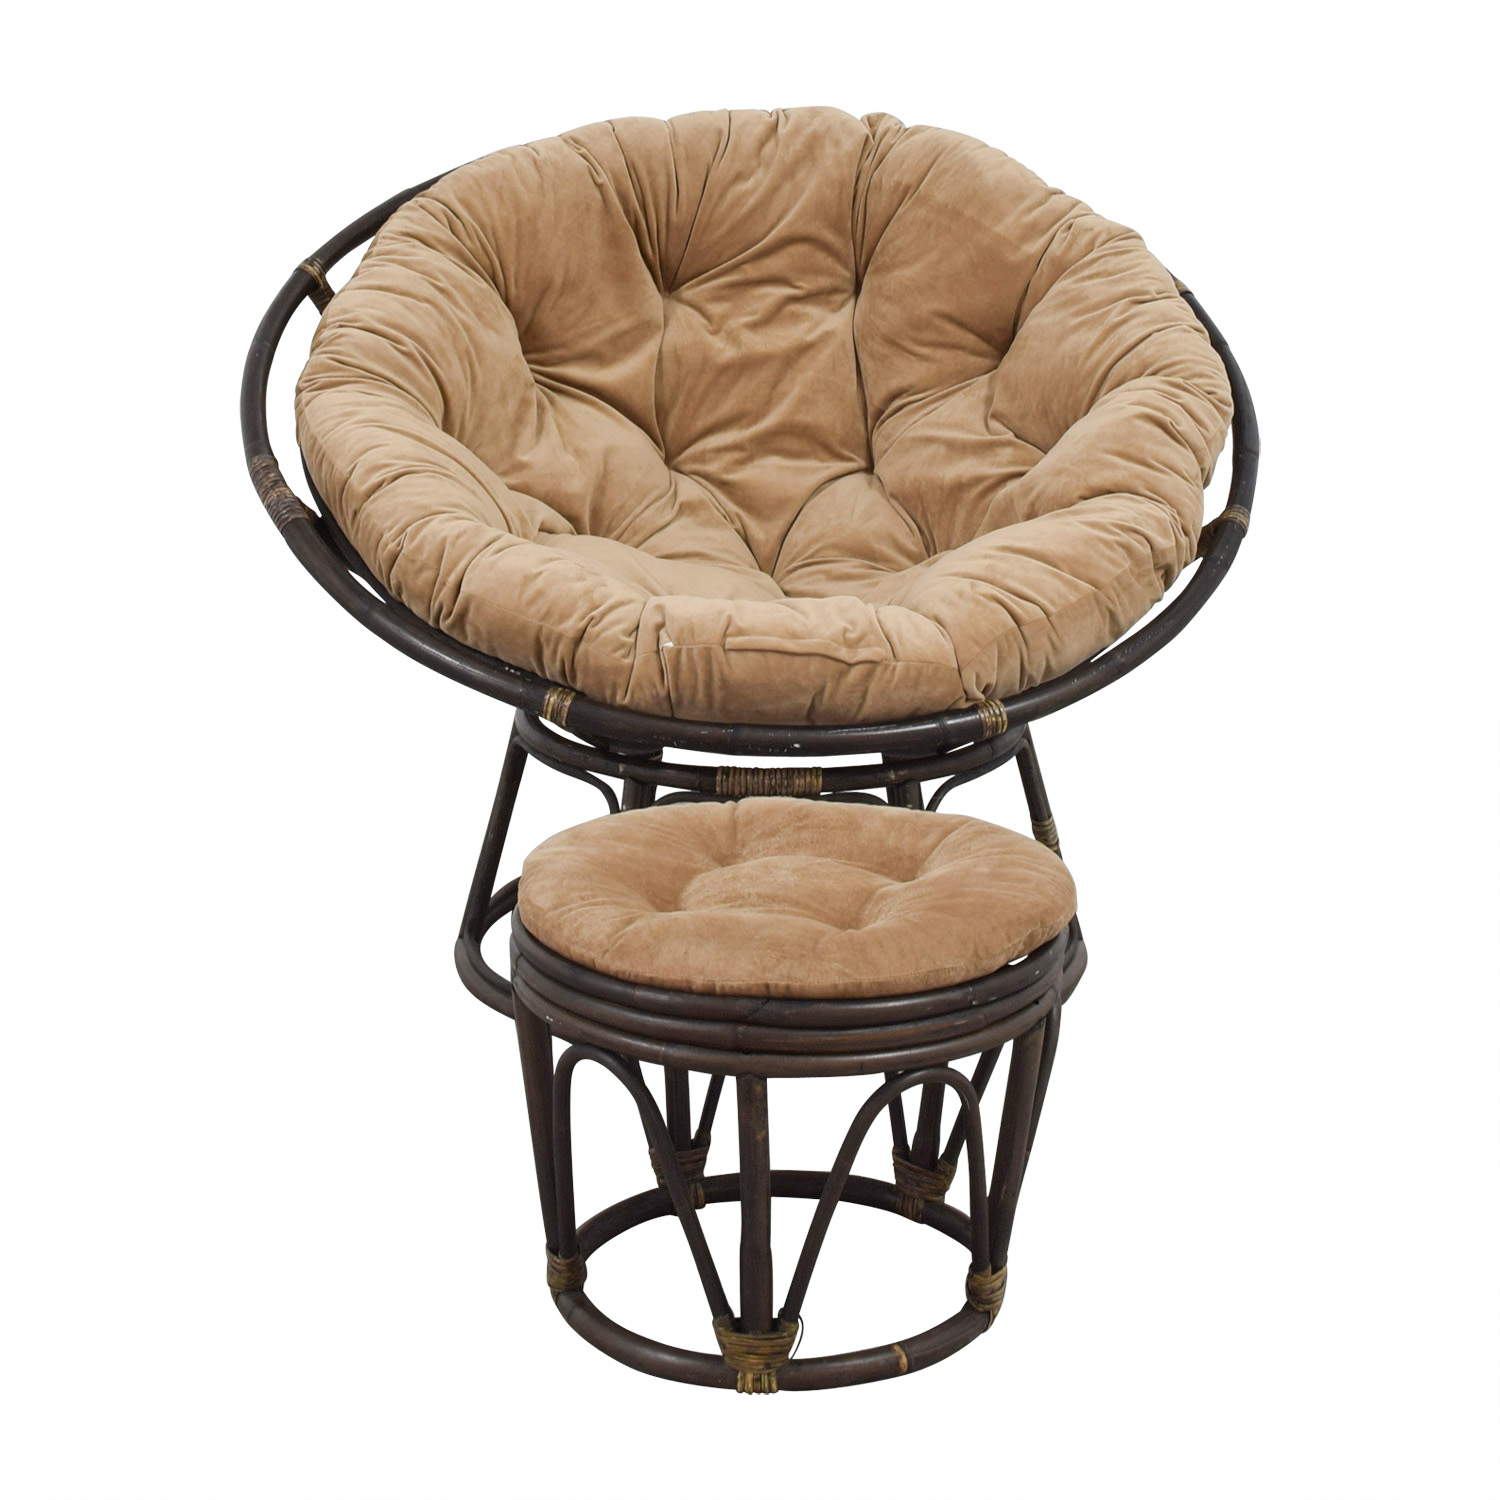 63 Off Pier 1 Pier 1 Imports Papasan Brown Lounge Chair And